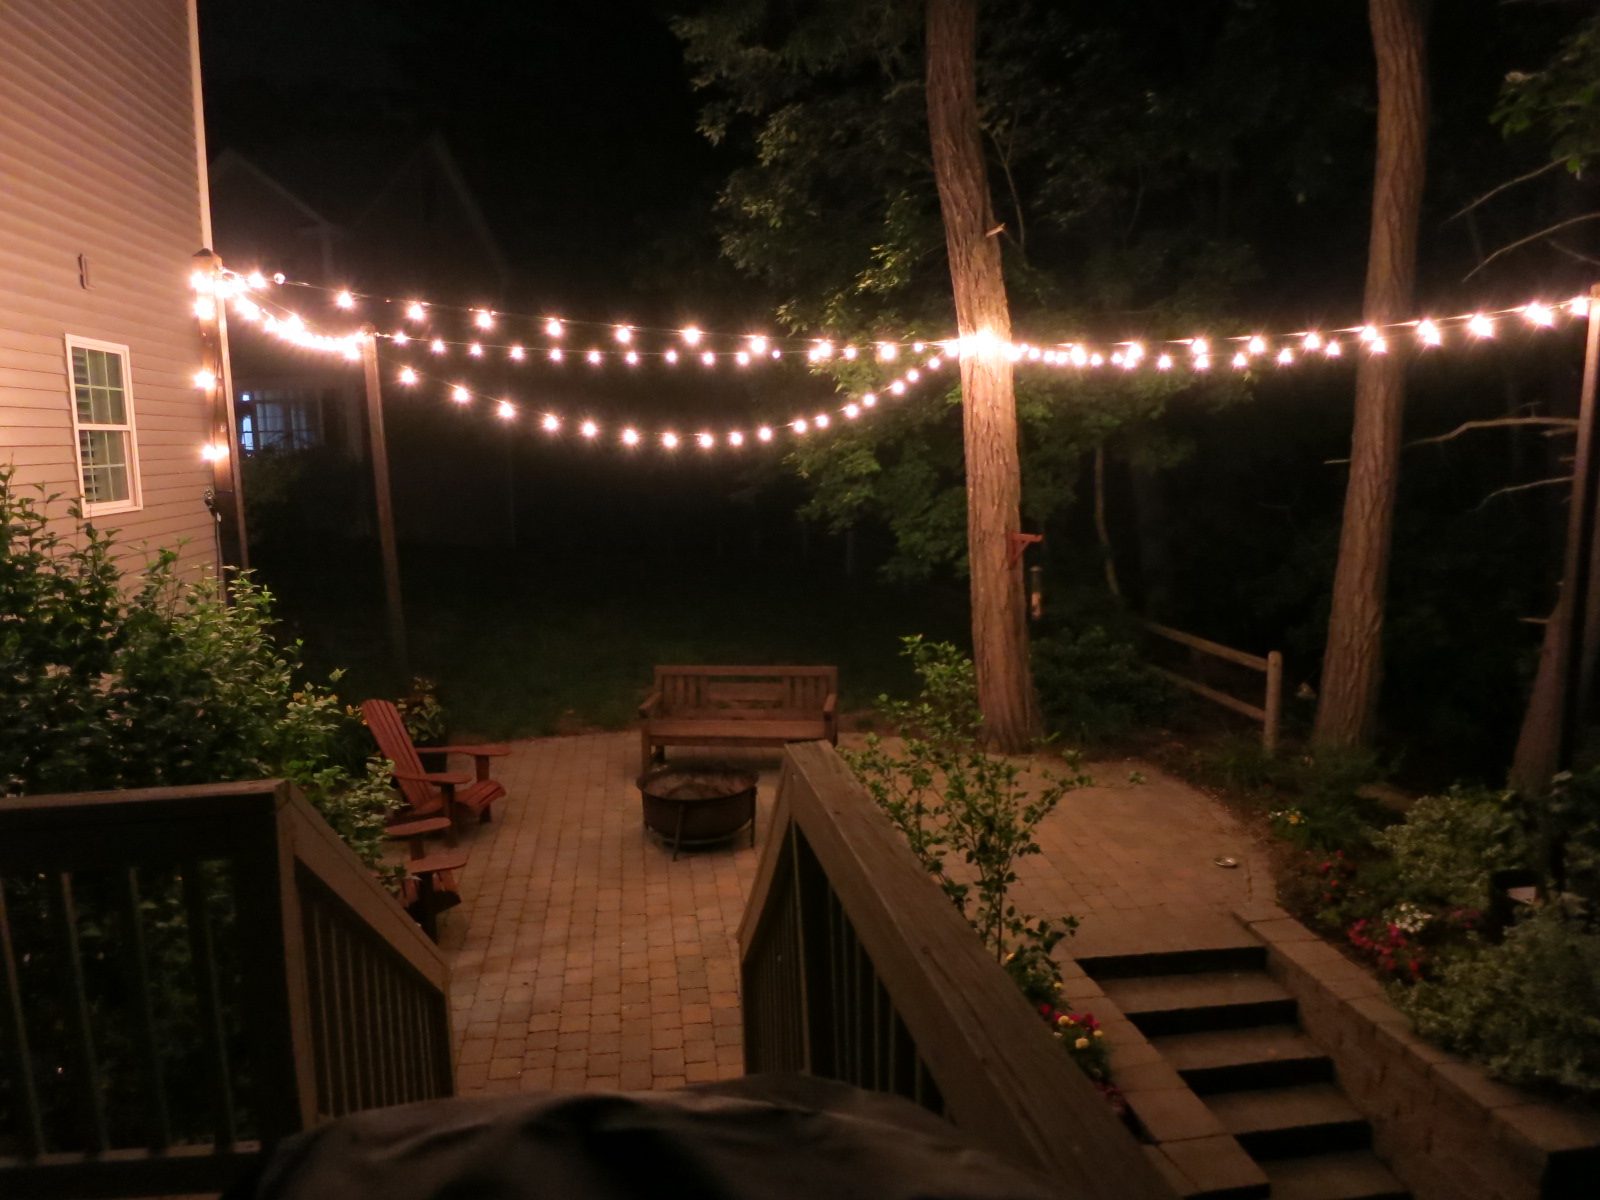 Picture of Patio Lighting With Planters